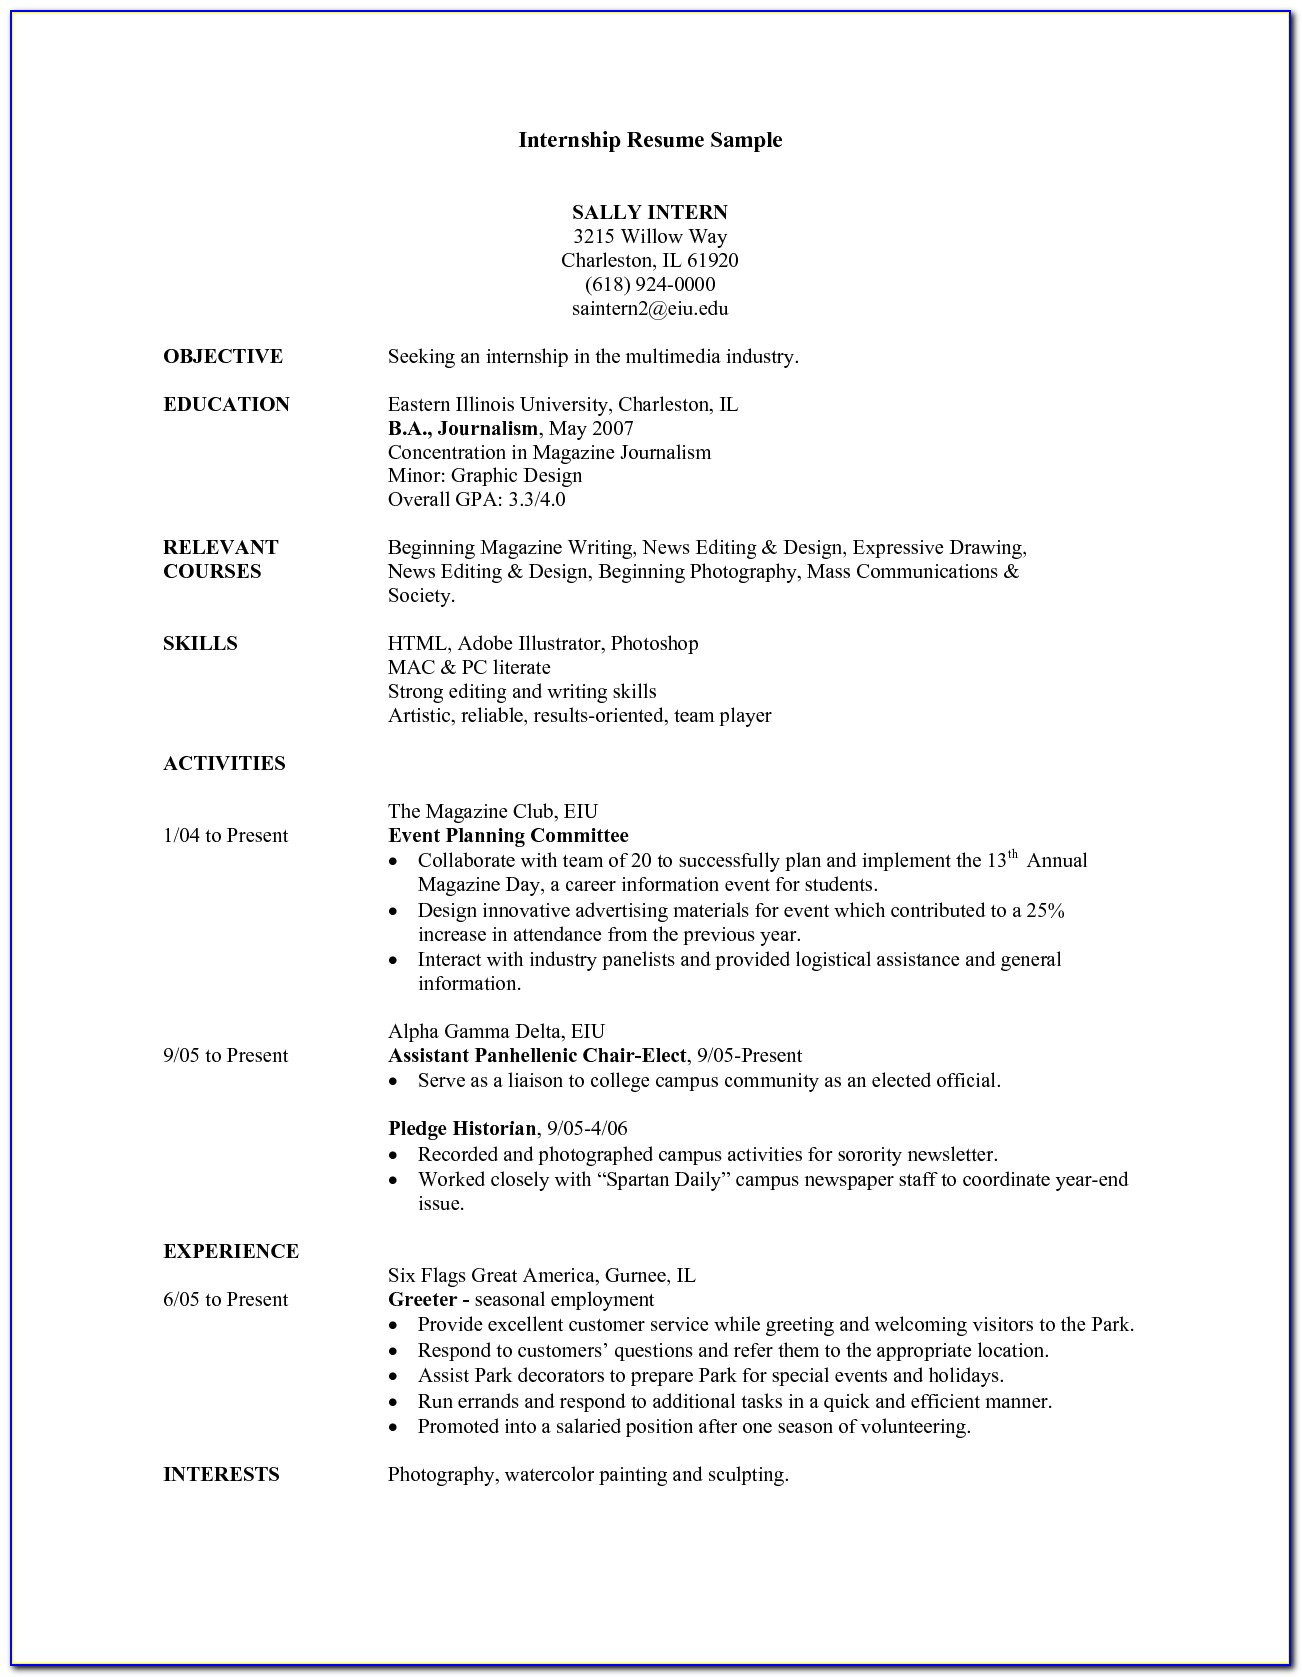 Example Resume For Internship Student